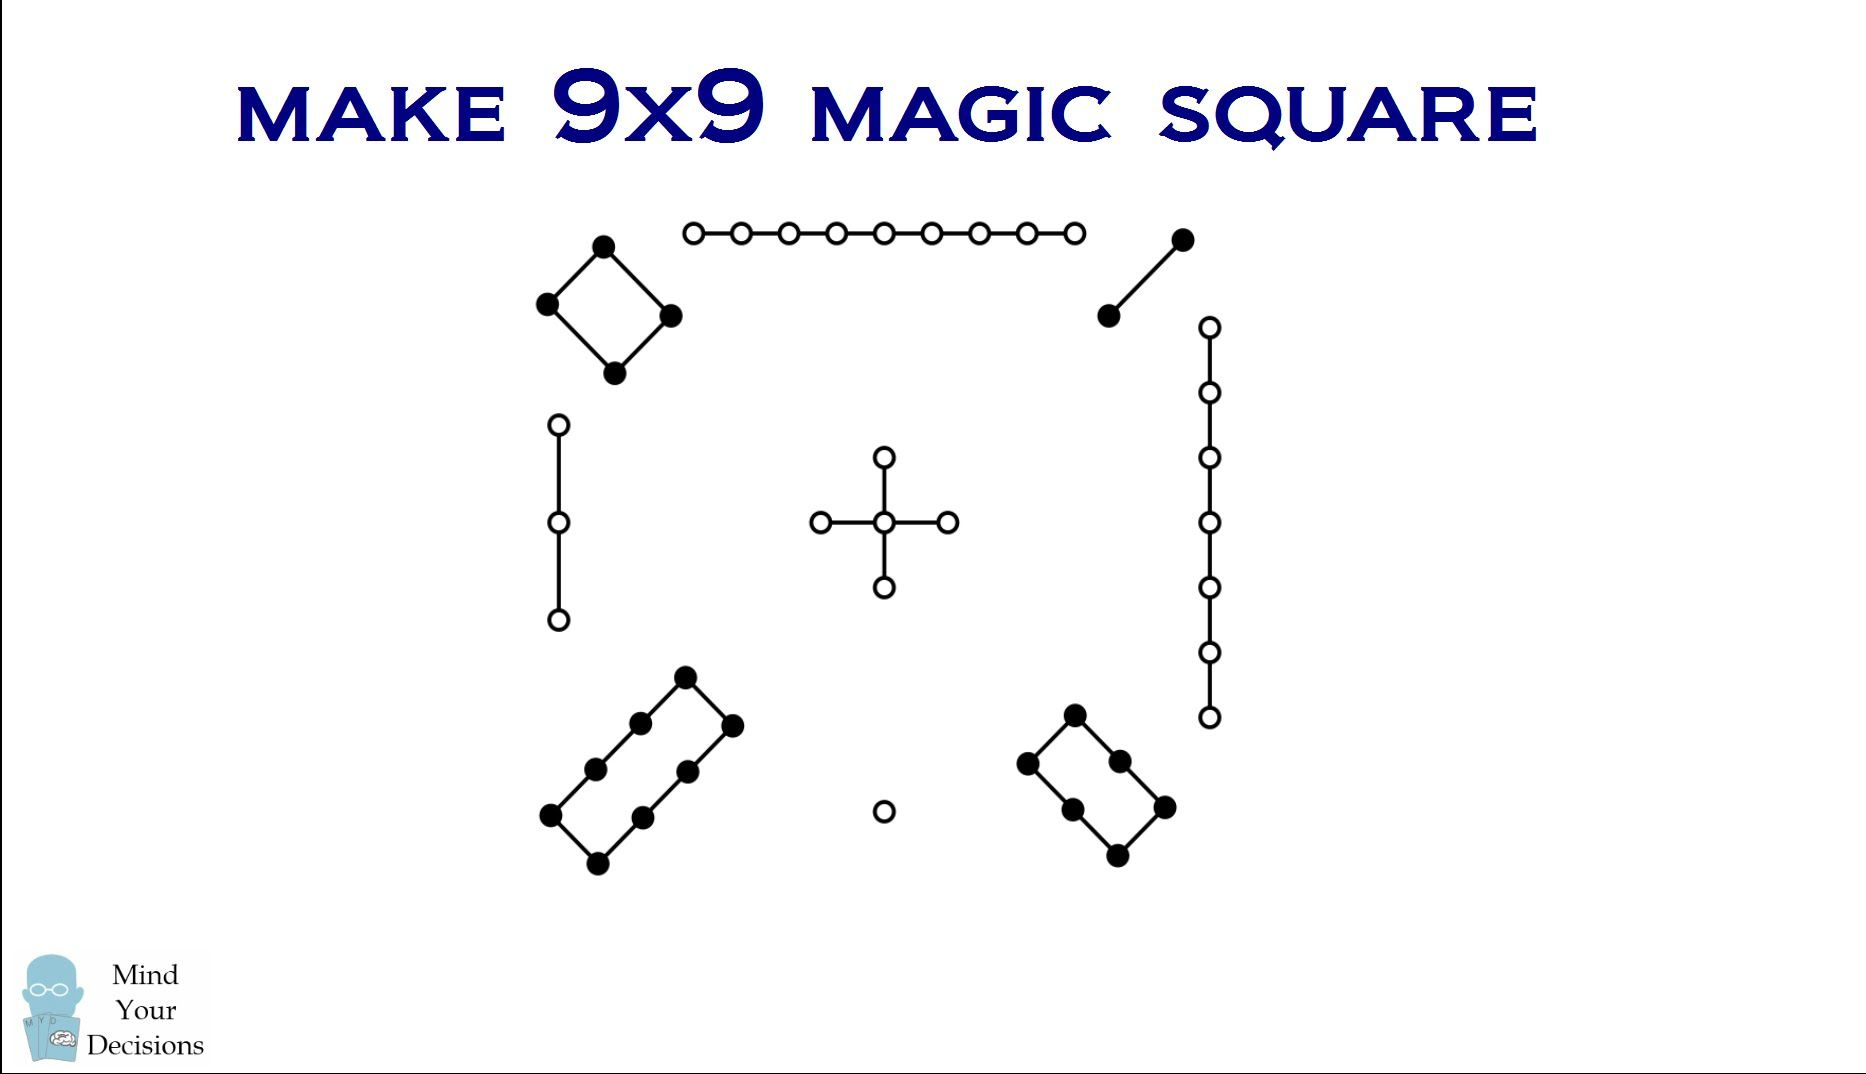 How To Make 3x3 And 9x9 Magic Squares - Ancient Chinese